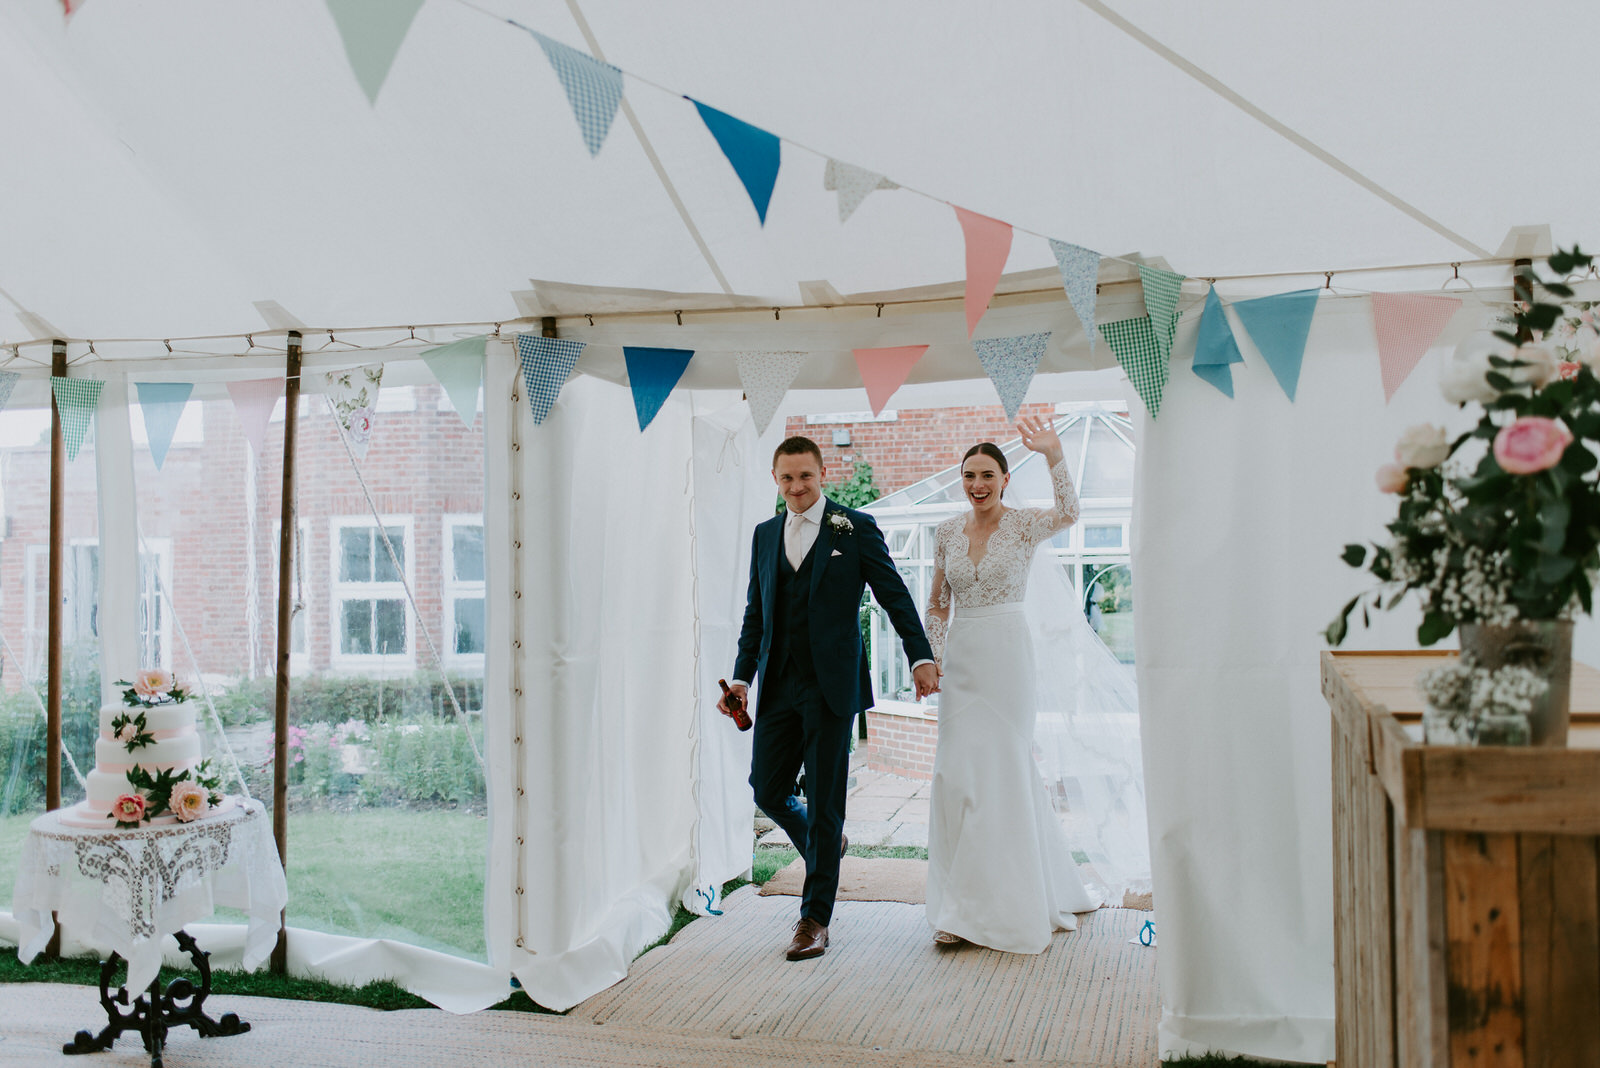 Intimate_Warwickshire_Countryside_Wedding_UK_75.JPG